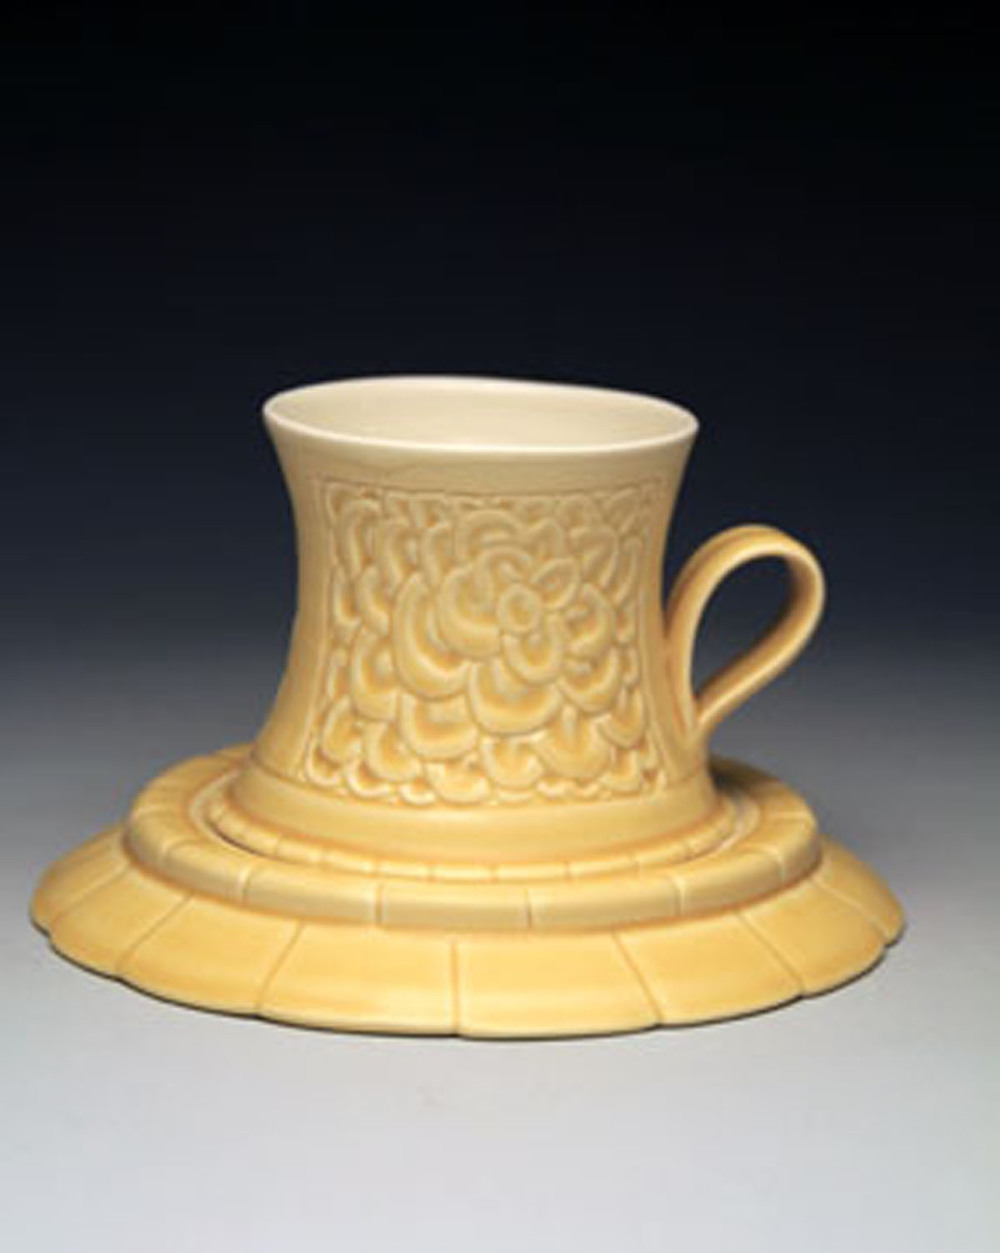 YellowCup&Saucer.jpg